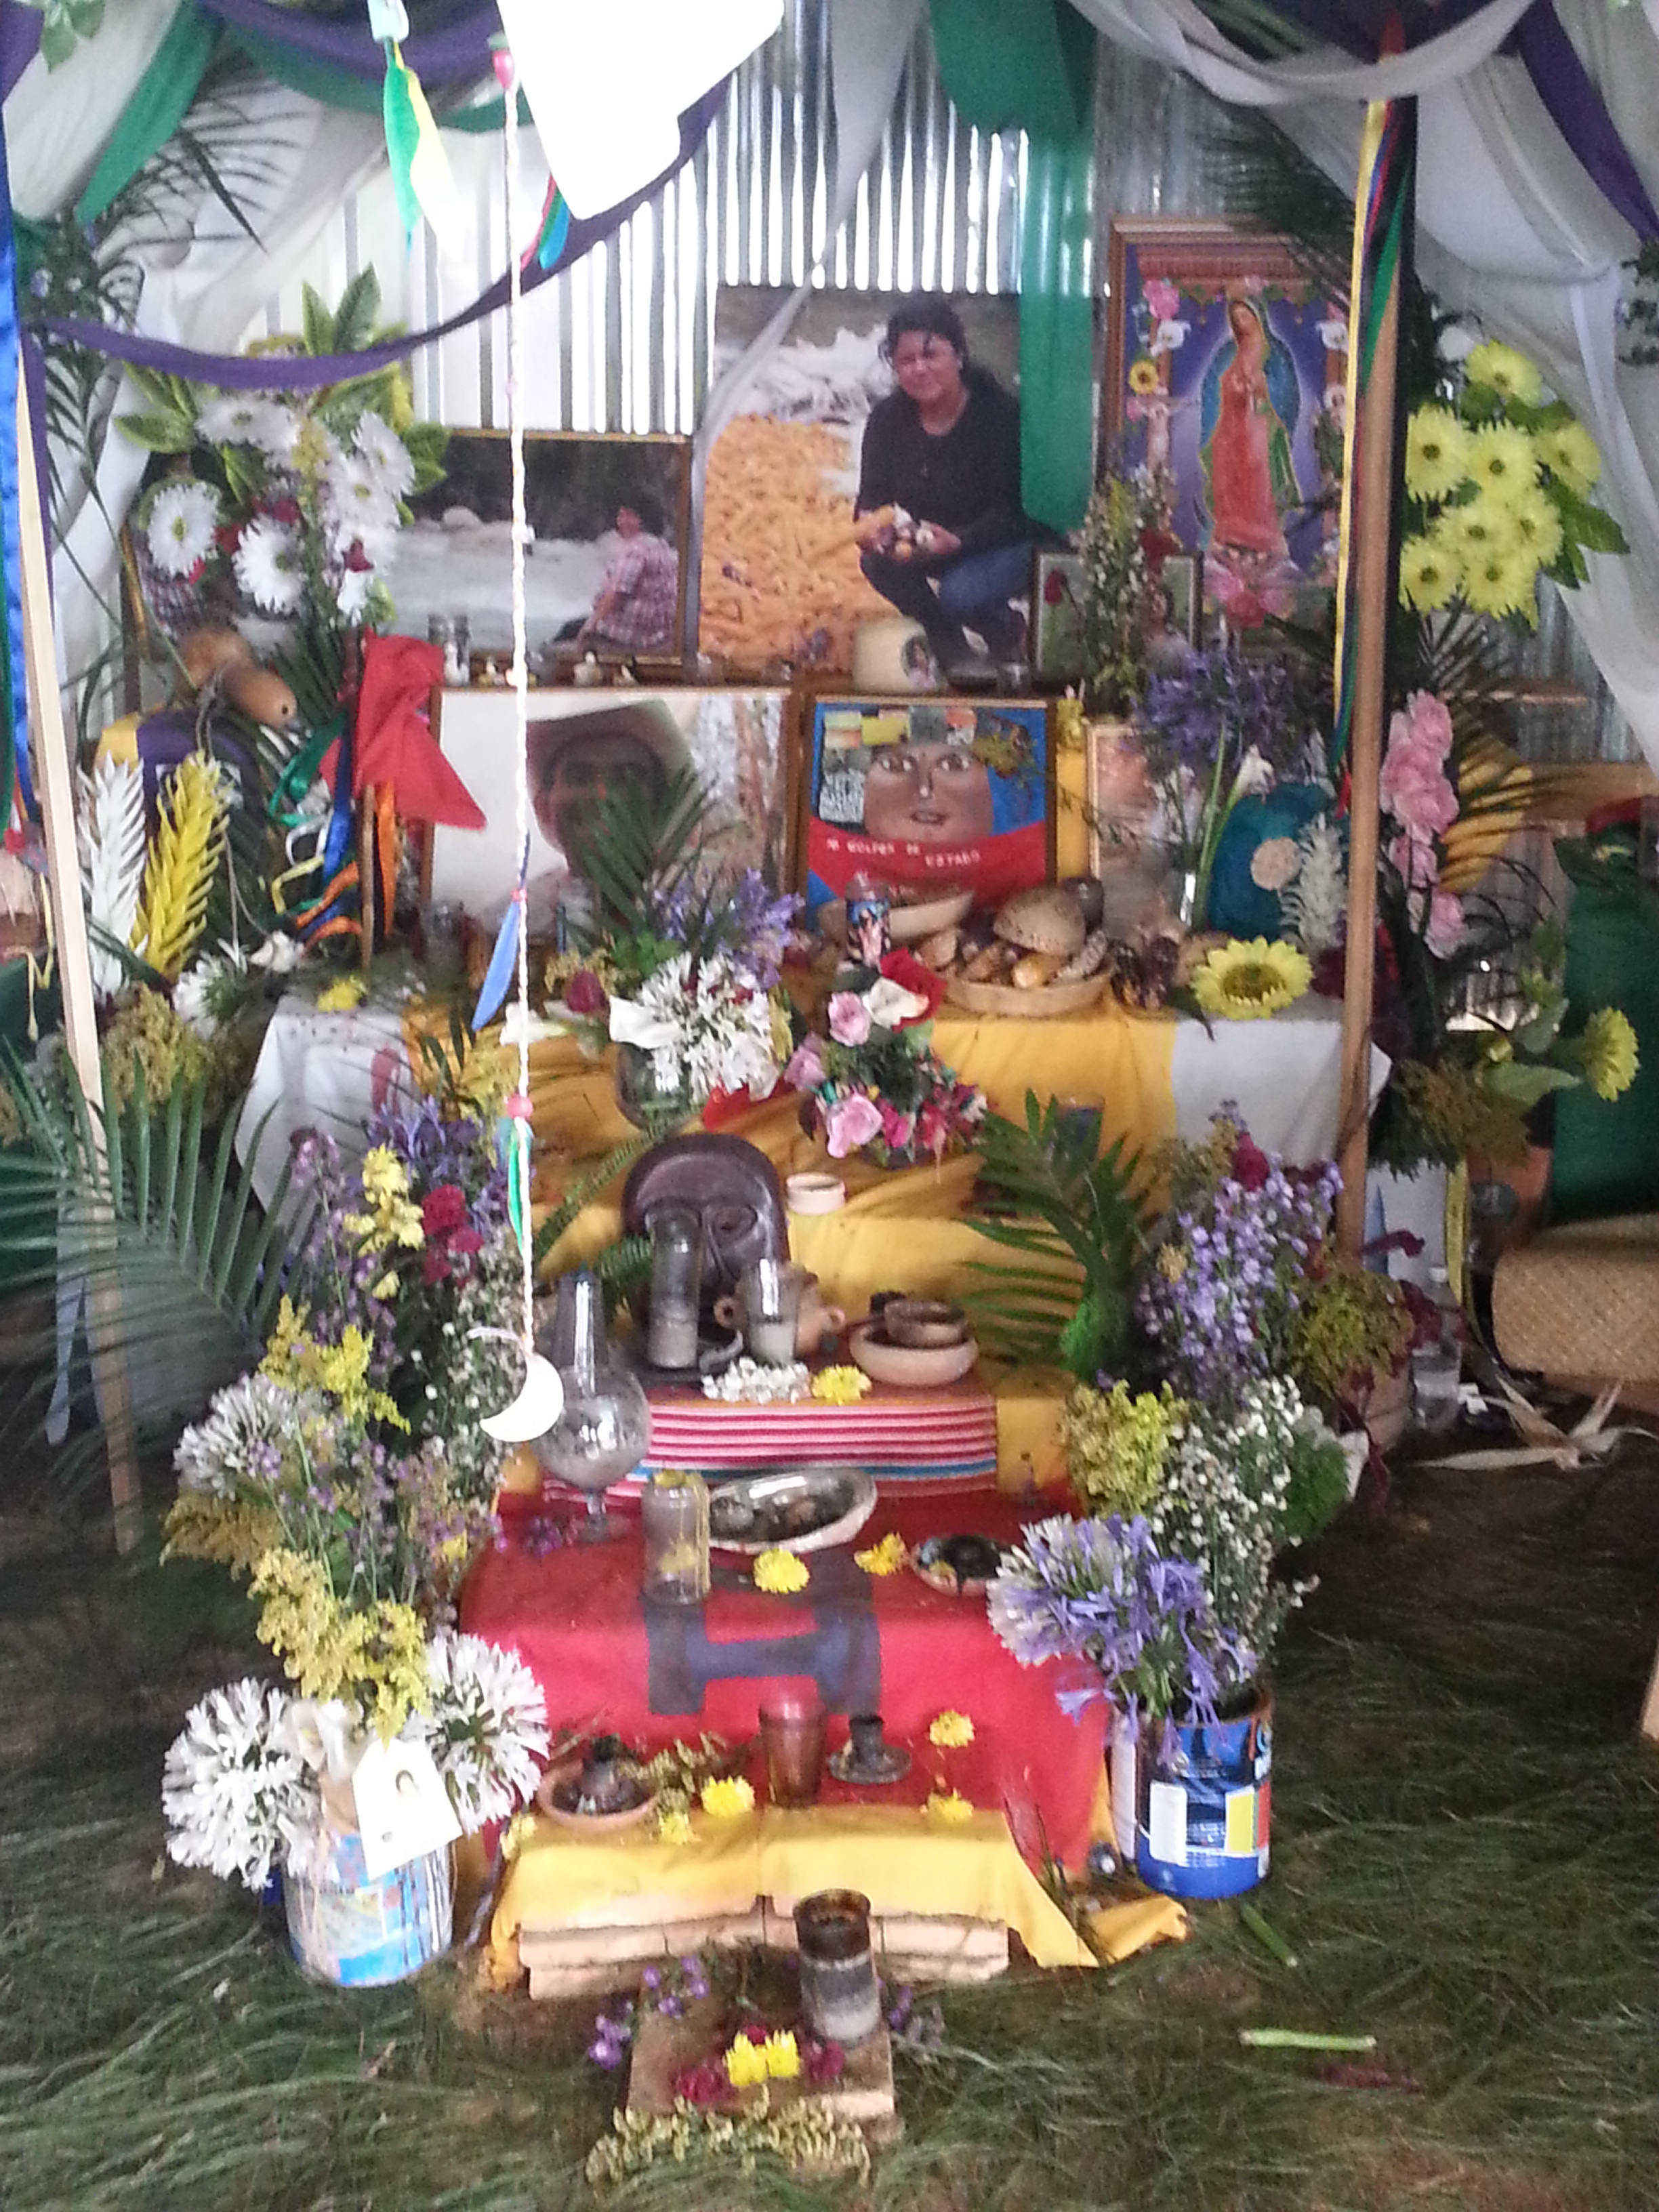 image is of the altar for Berta Caceres at Utopia in Honduras